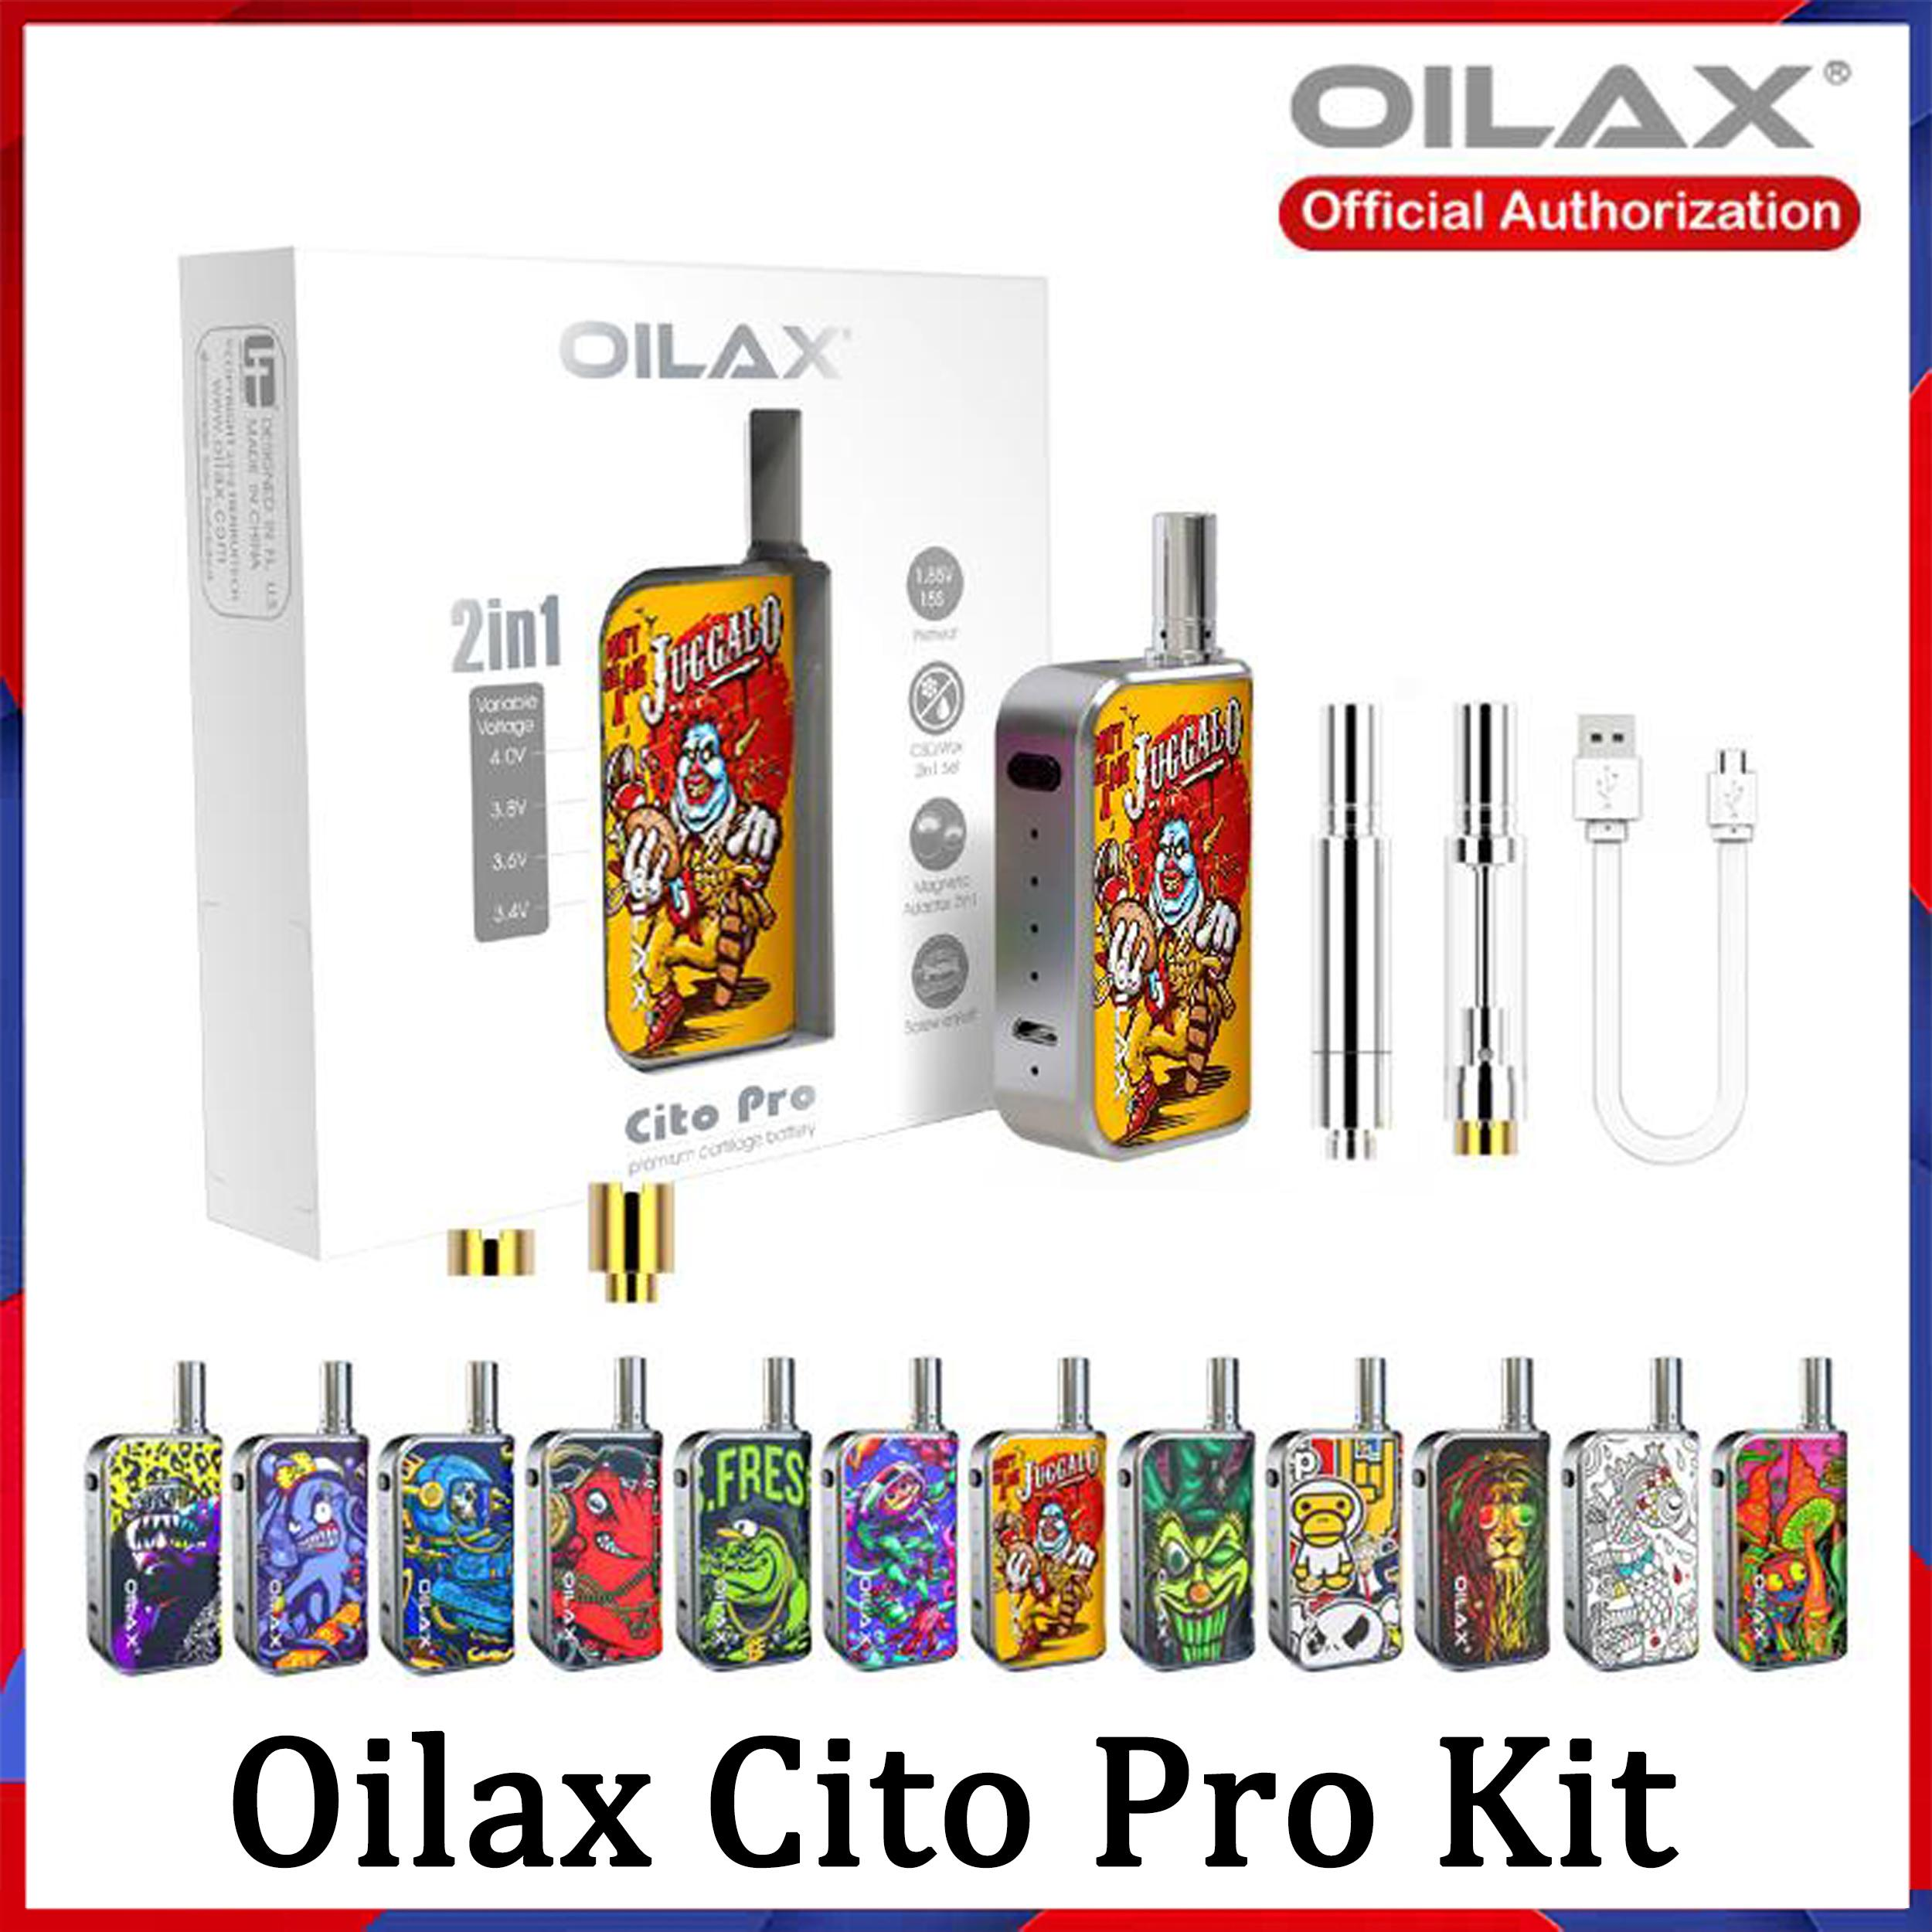 100% Authenti Oilax Cito Pro atomizers Vape Pen 2 in 1 Starter Kit Electronic Cigarette 400mAh Variable Voltage Preheat Adjusted Battery Vol